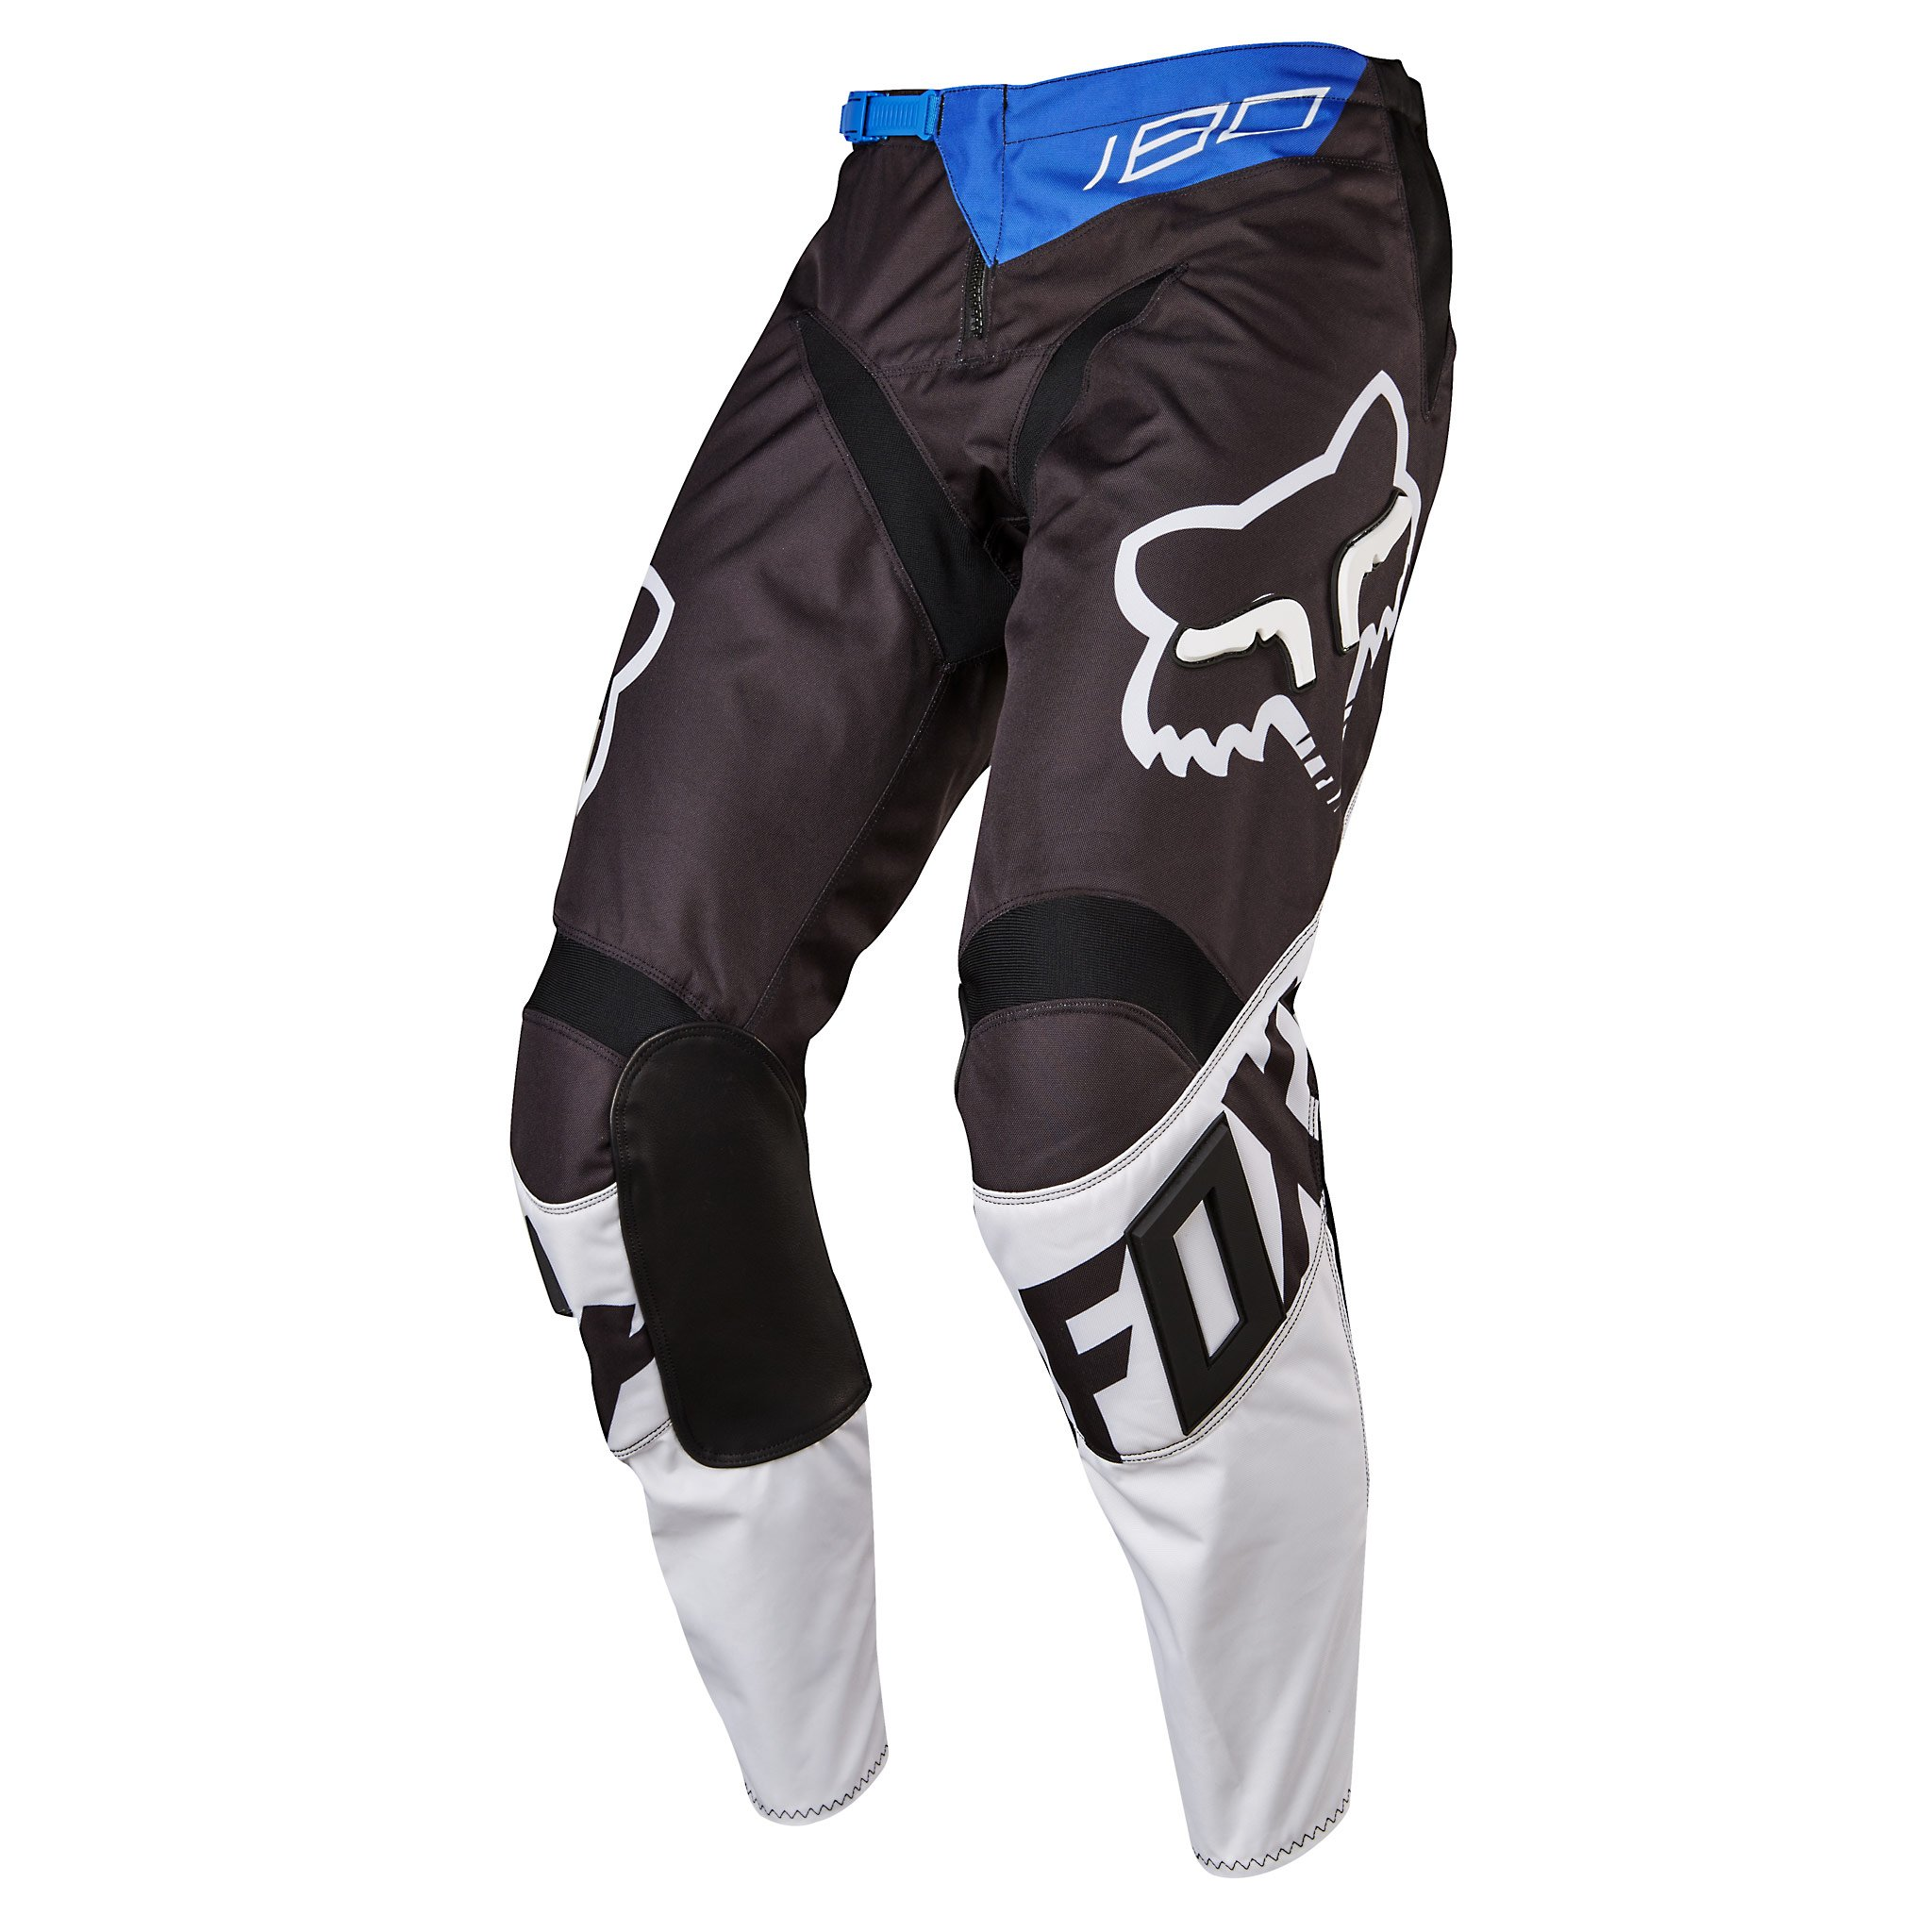 Fox Racing 2017 180 Race Youth Boys Off-Road Motorcycle Pants - Black / Size 22